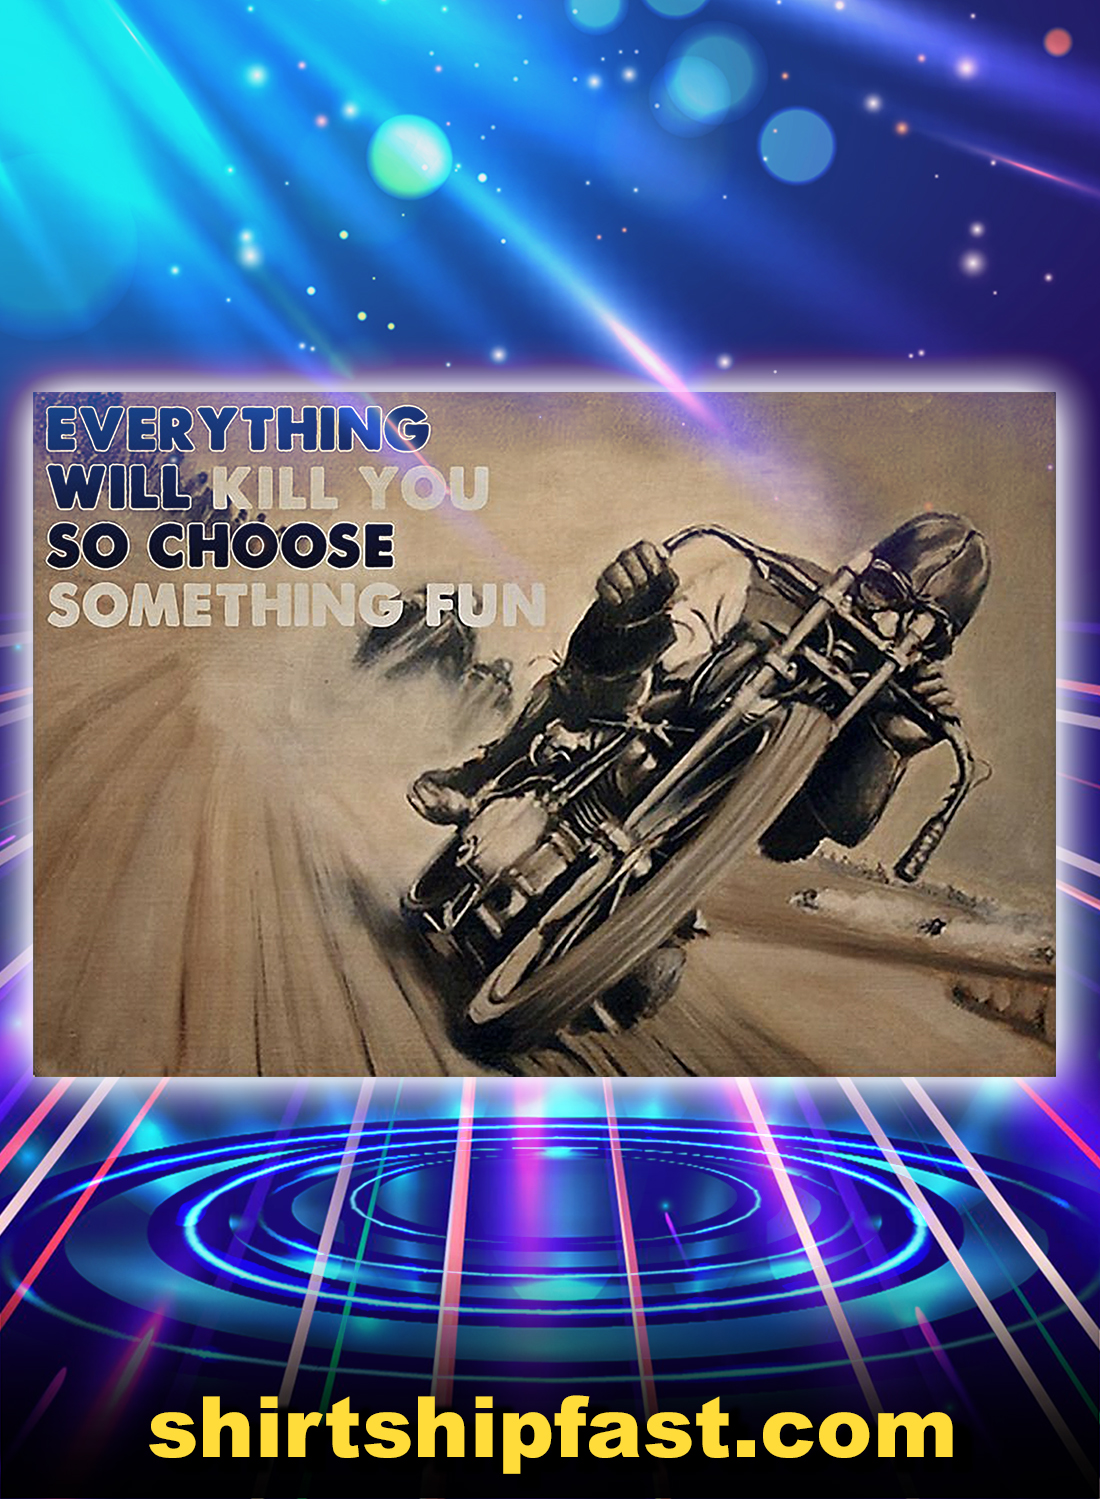 Motorbike racing everything will kill you so choose something fun poster - A4